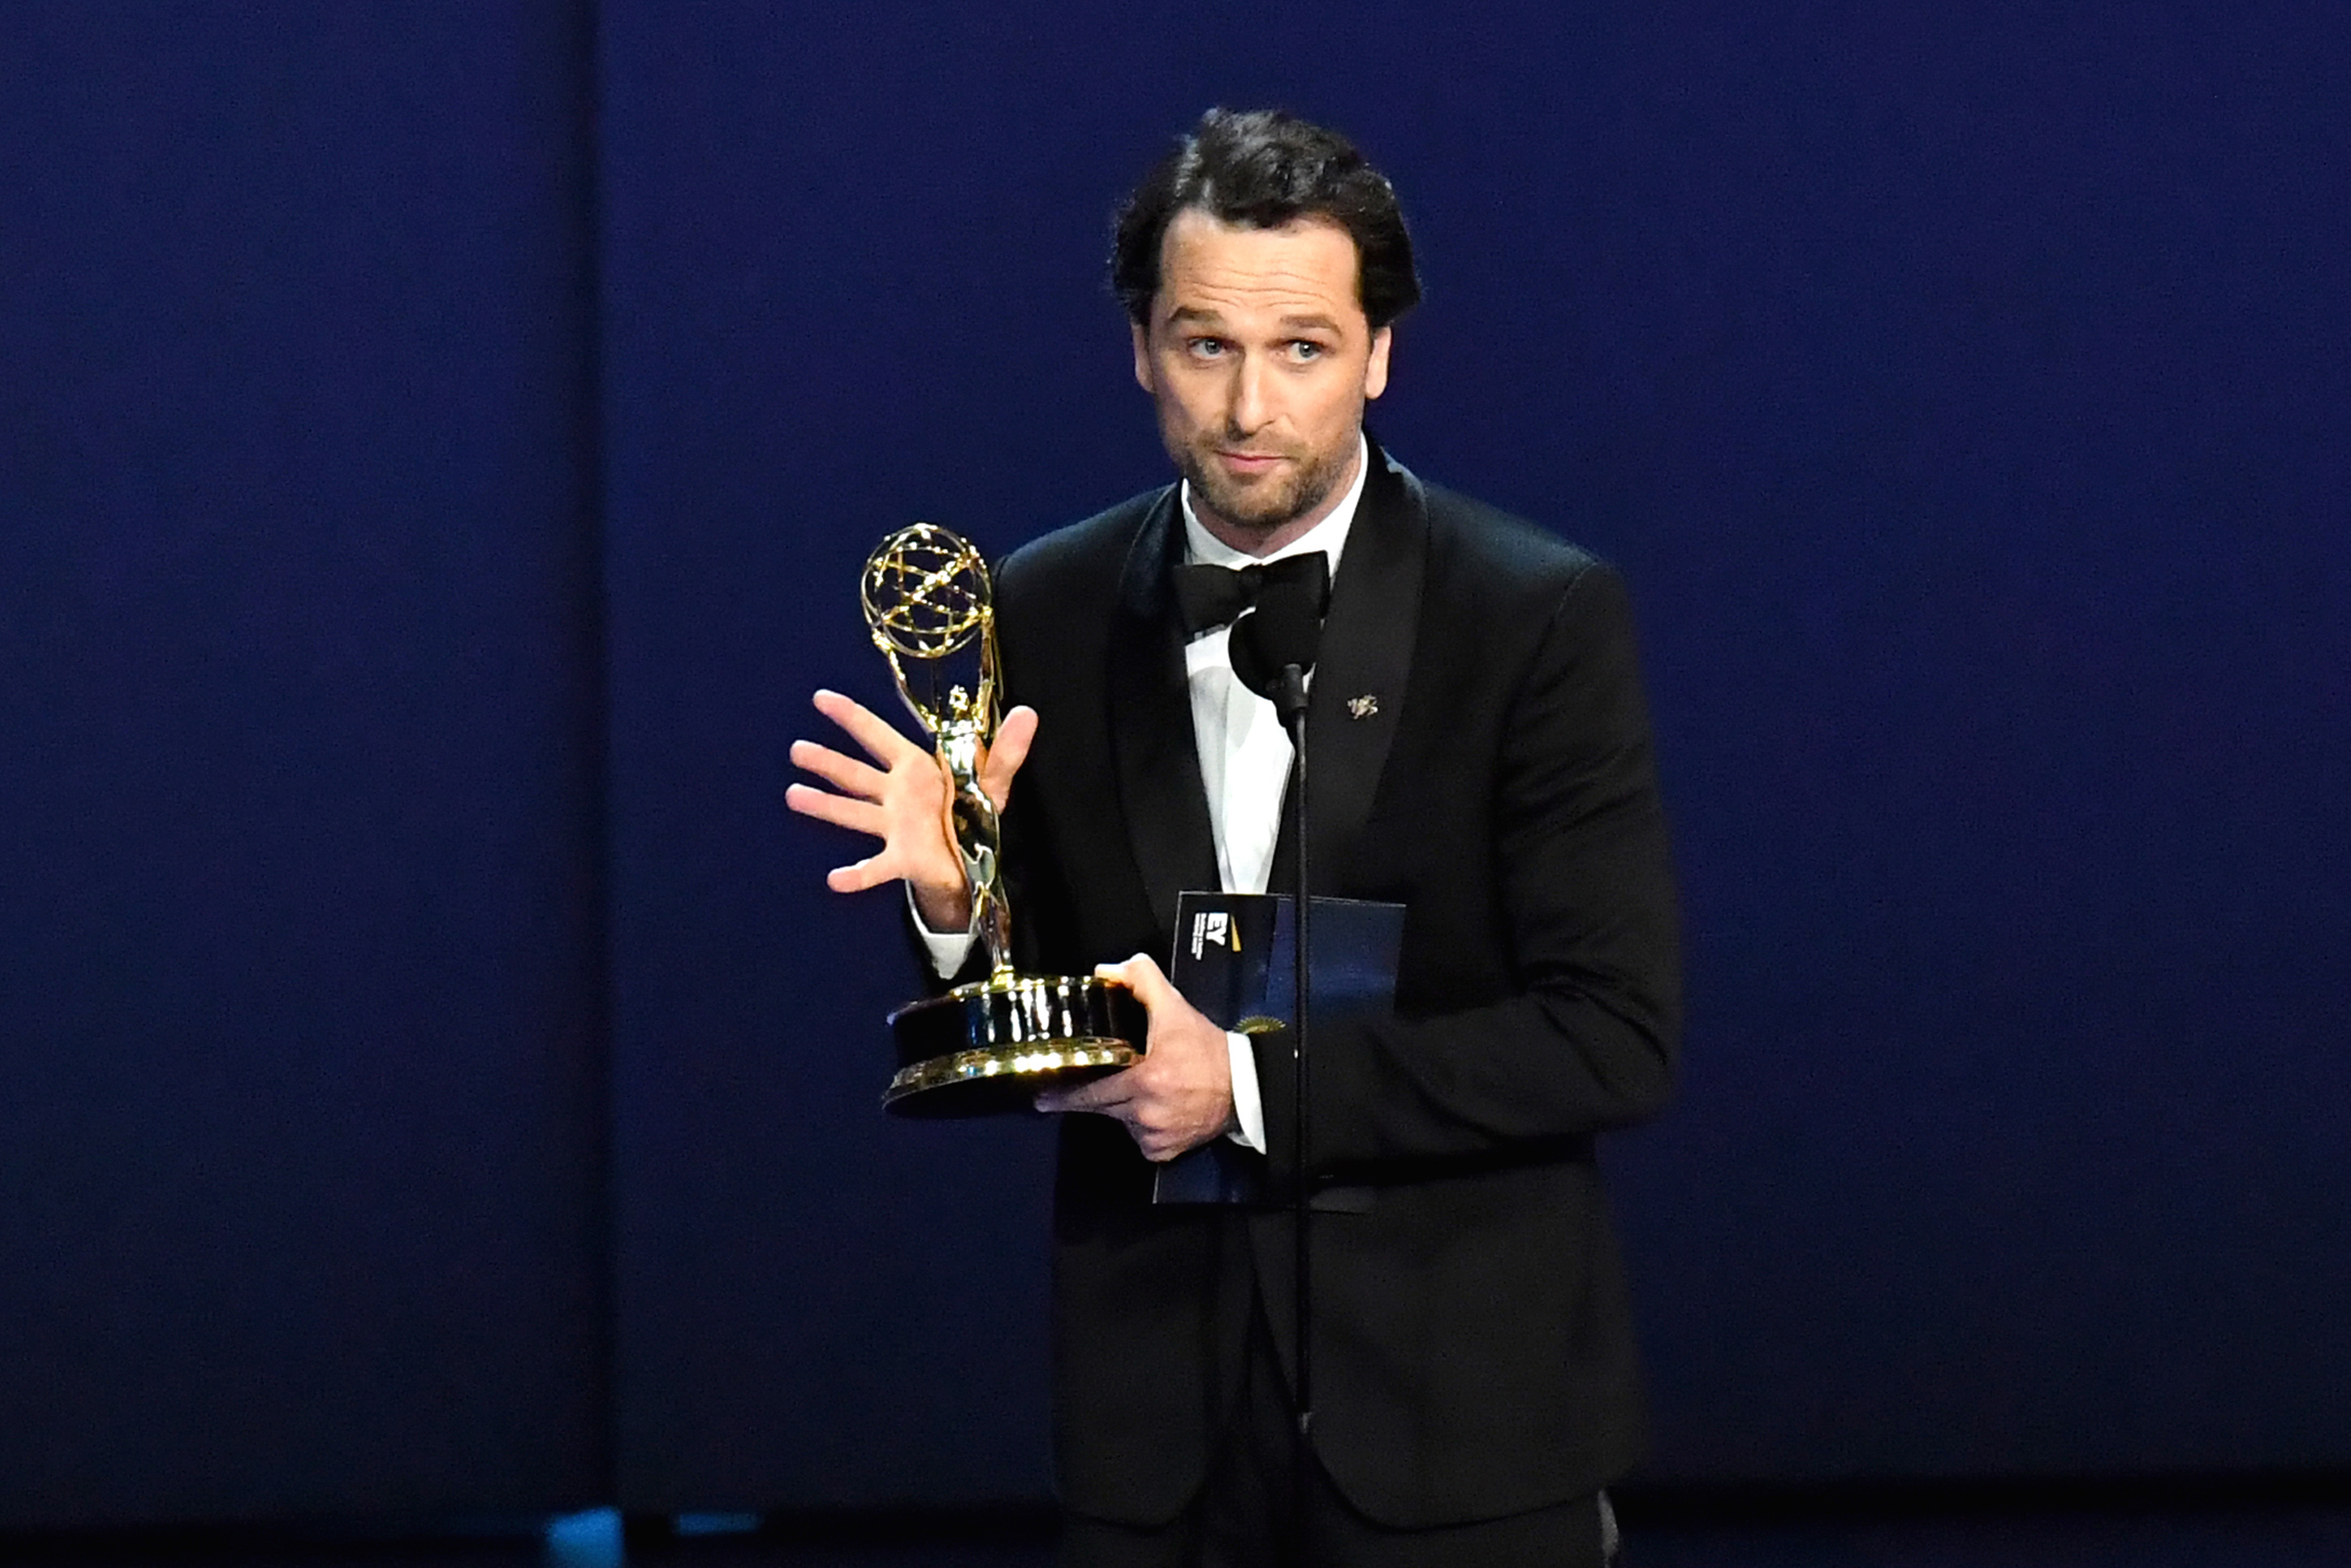 Matthew Rhys accepts the Outstanding Lead Actor in a Drama Series award for 'The Americans' onstage during the 70th Emmy Awards at Microsoft Theater on Sept. 17, 2018 in Los Angeles.